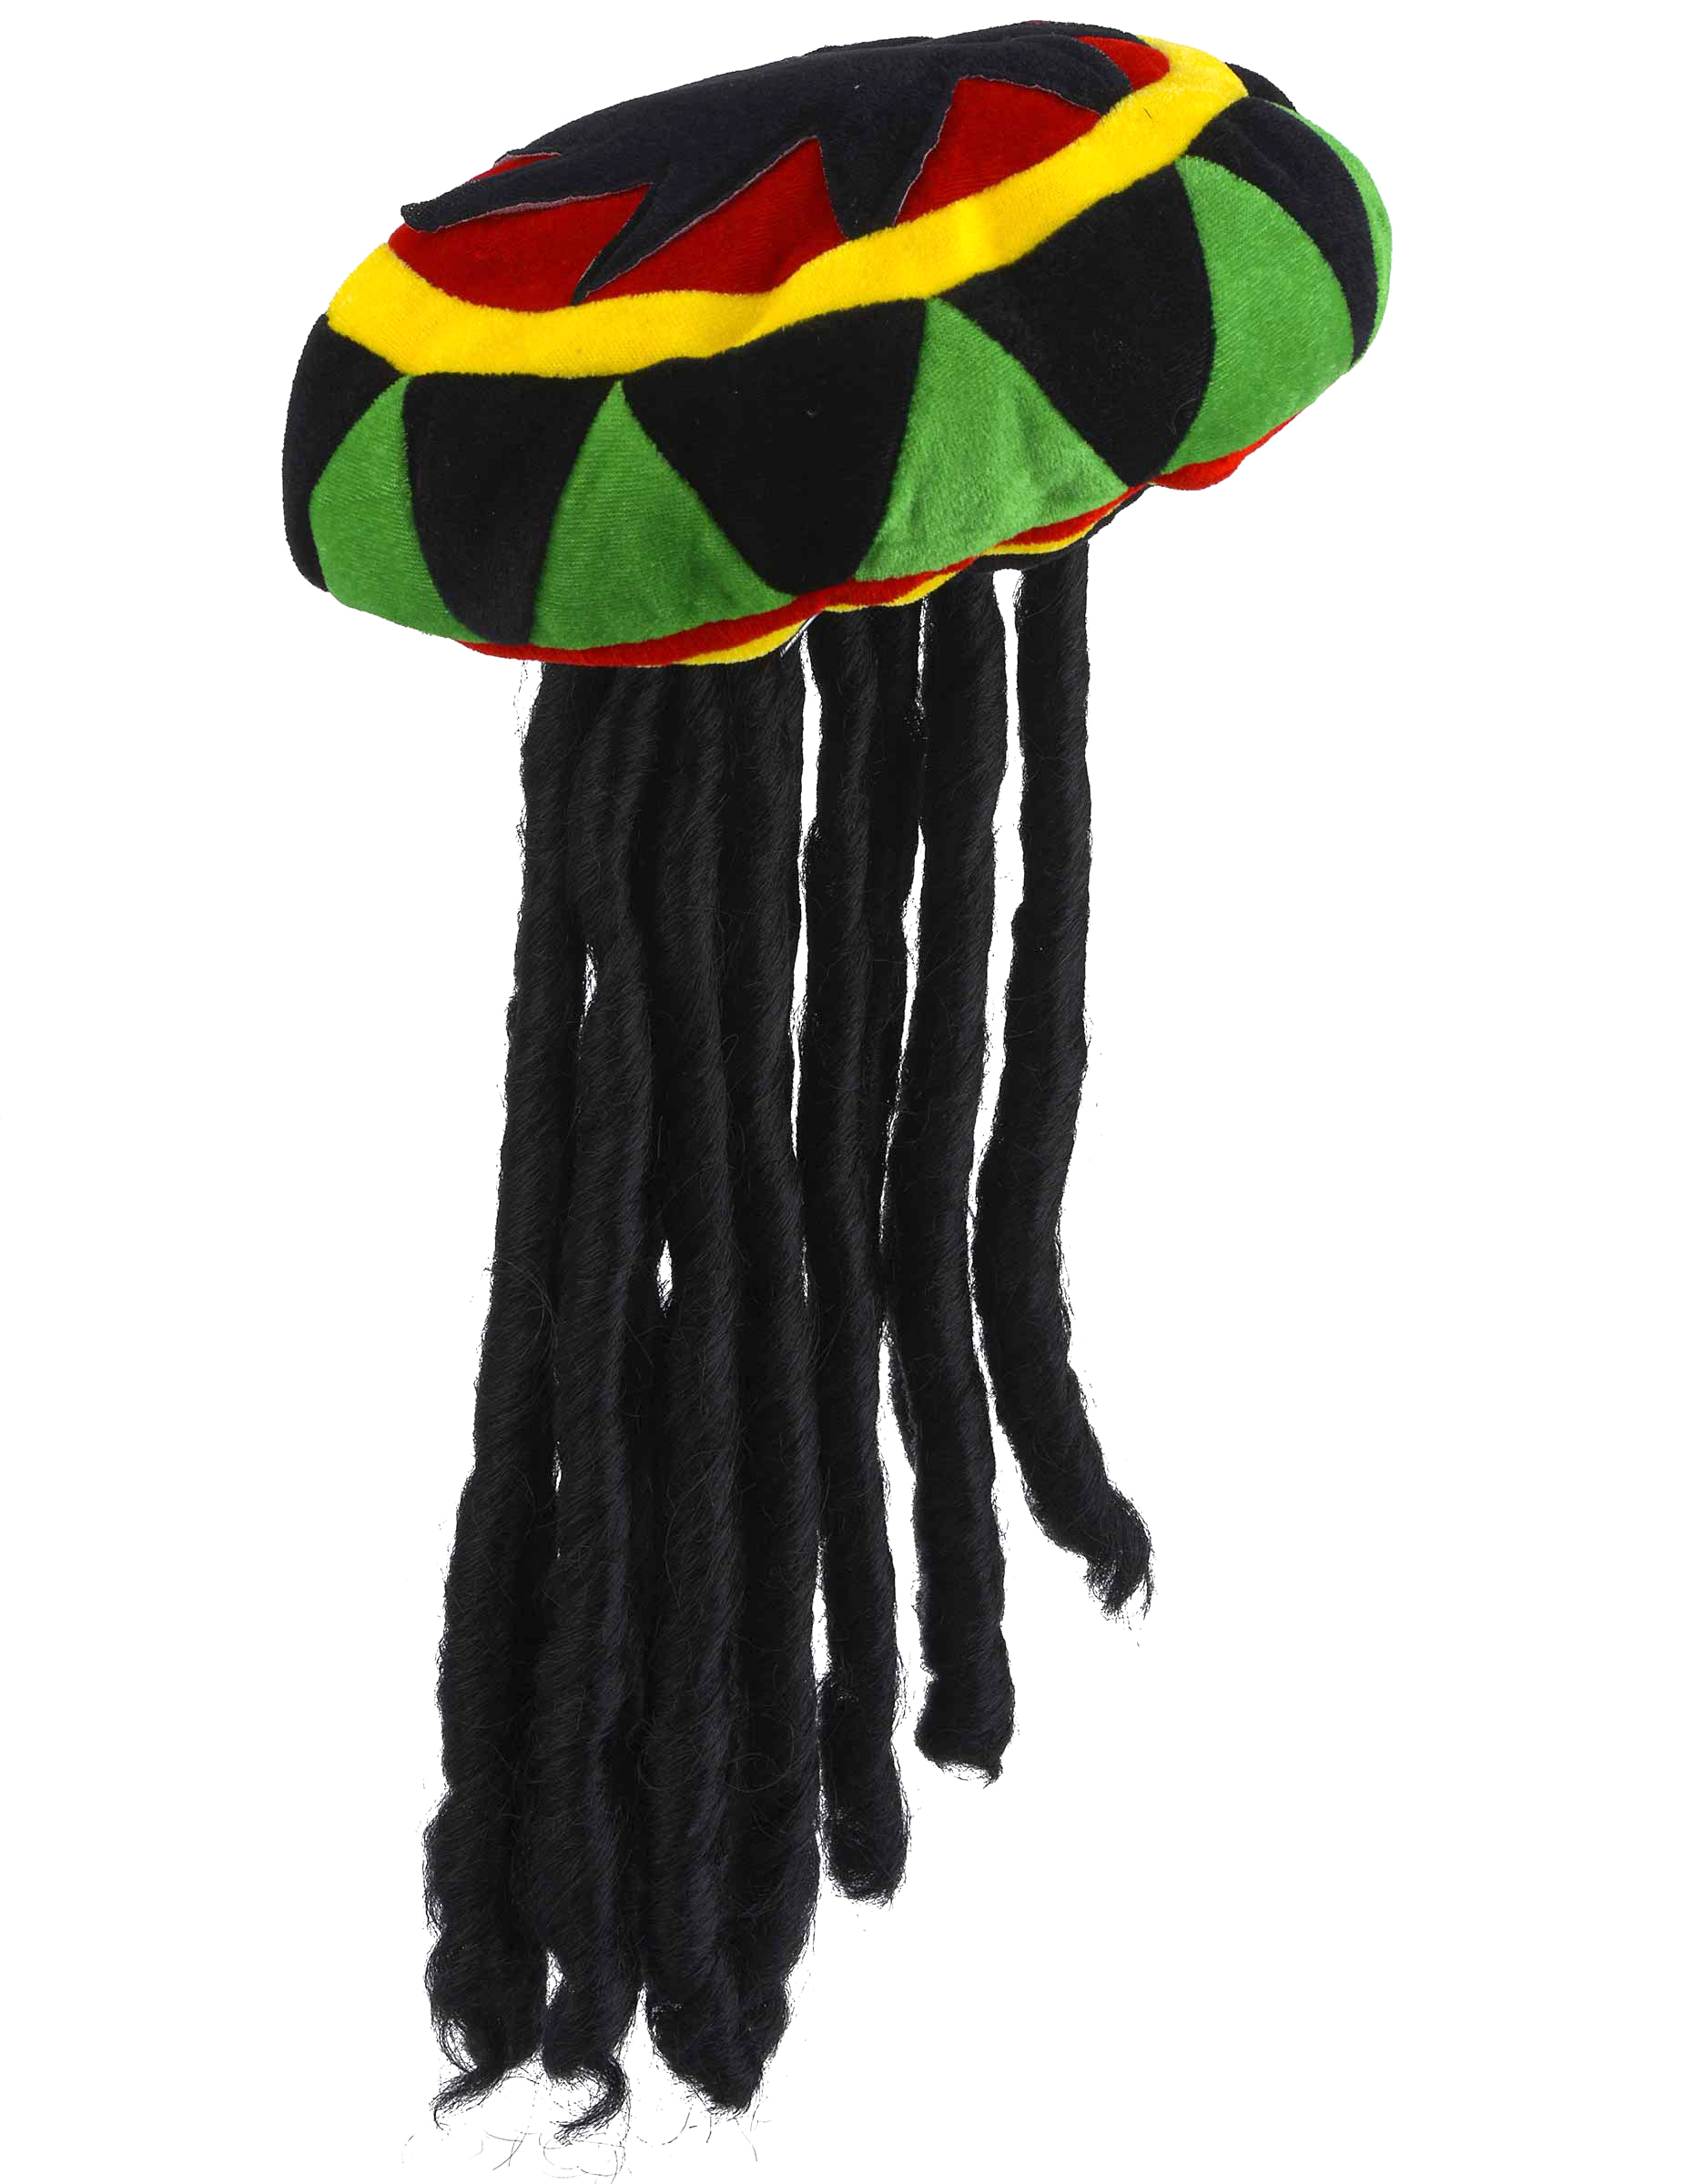 Bonnet rastafari avec dreadlocks mi-longs